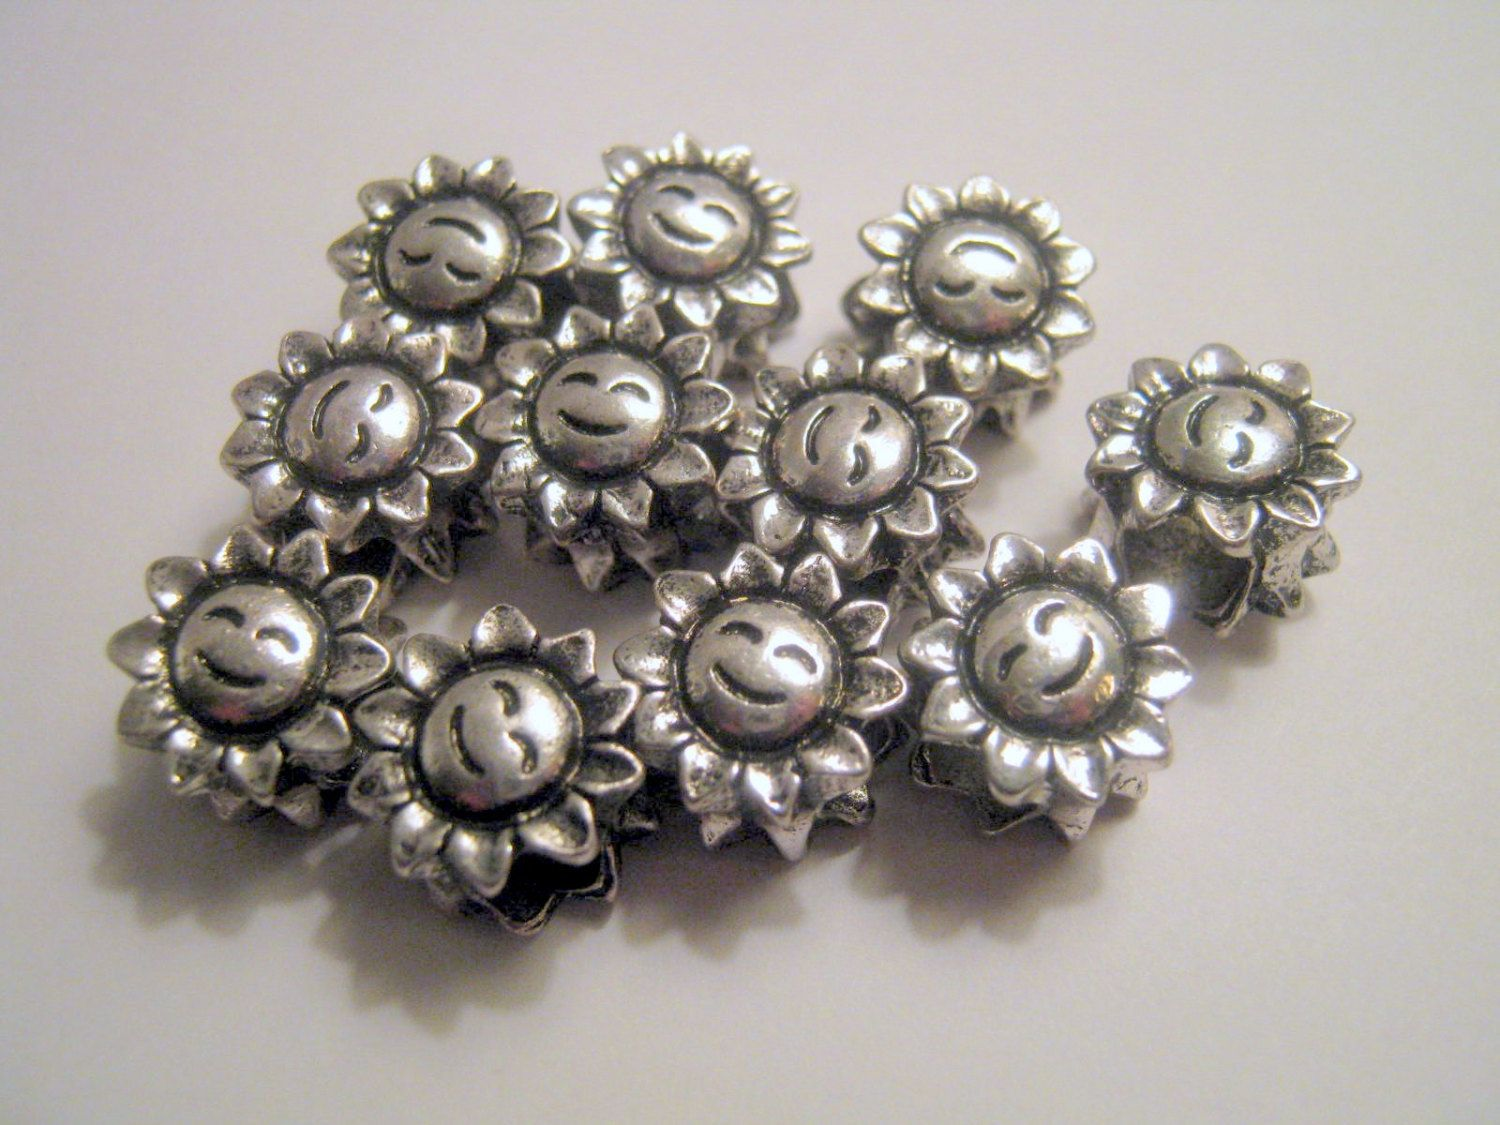 Clearance 11 Silver Tone Sunflower Beads